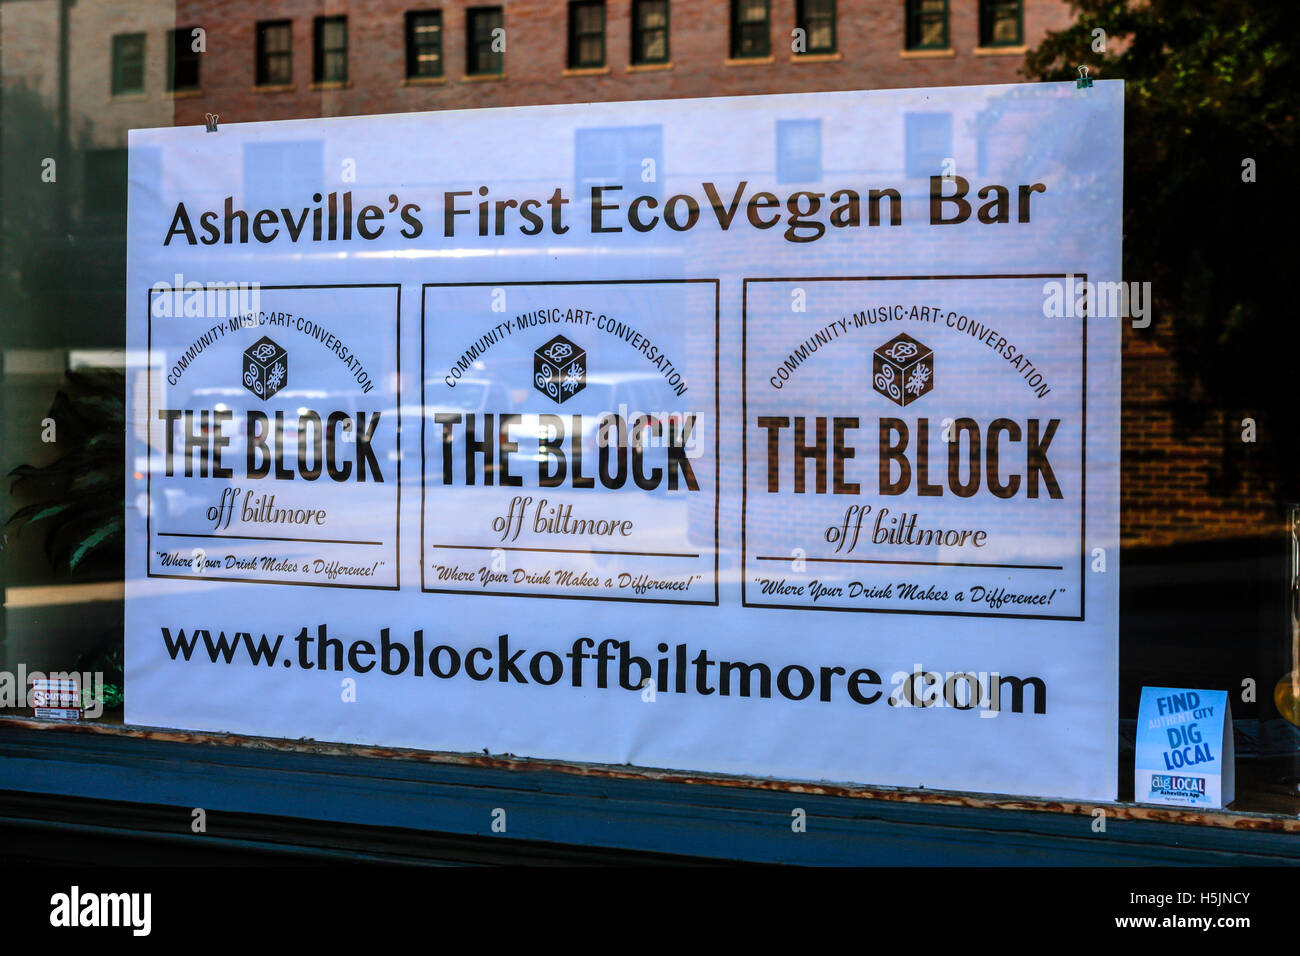 Sign in the window of The Block, an  EcoVegan Bar in downtown Asheville, NC - Stock Image